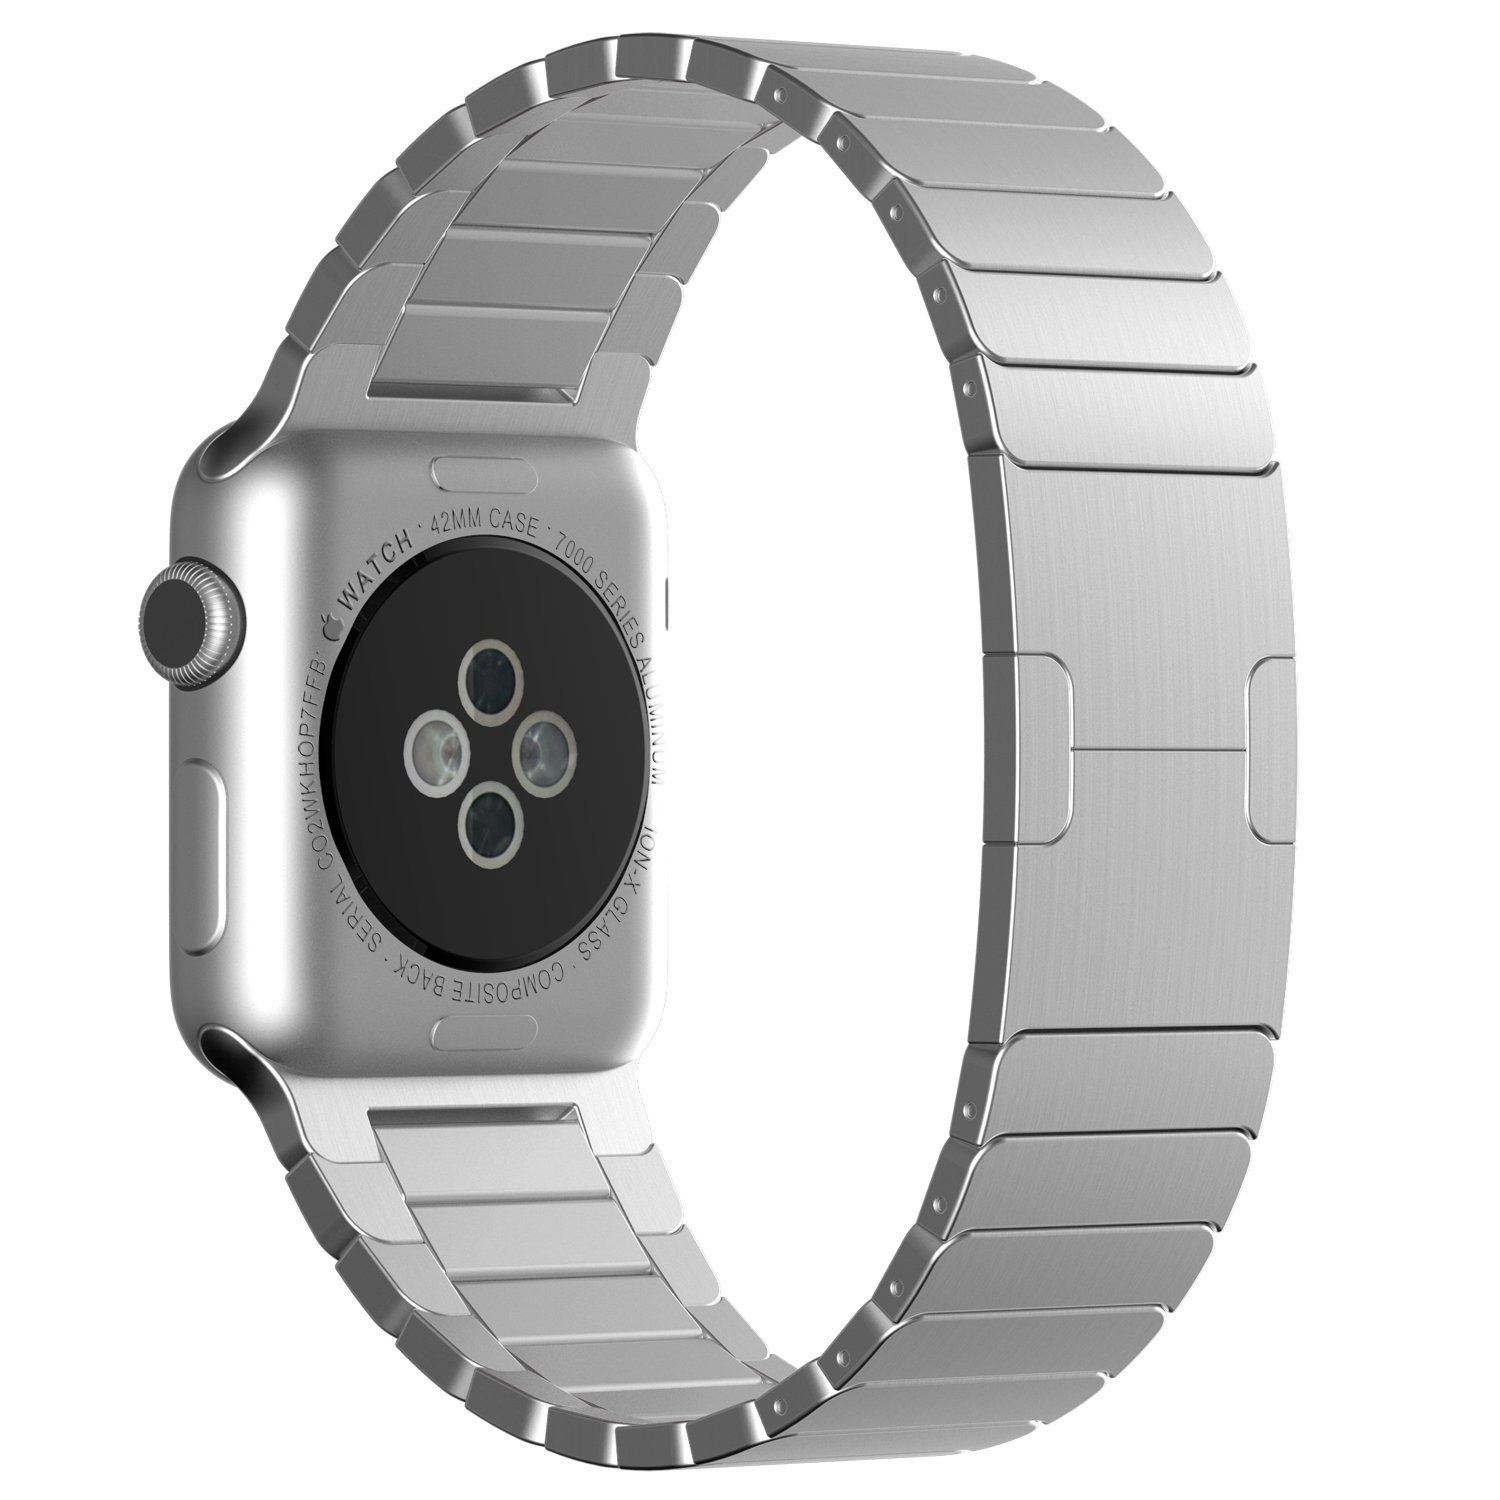 Apple Watch Band, Kasima Stainless Steel Link Bracelet with Butterfly Closure Replacement Band for Apple Watch/ Sport/ Edition (Link Bracelet-42mm Silver)